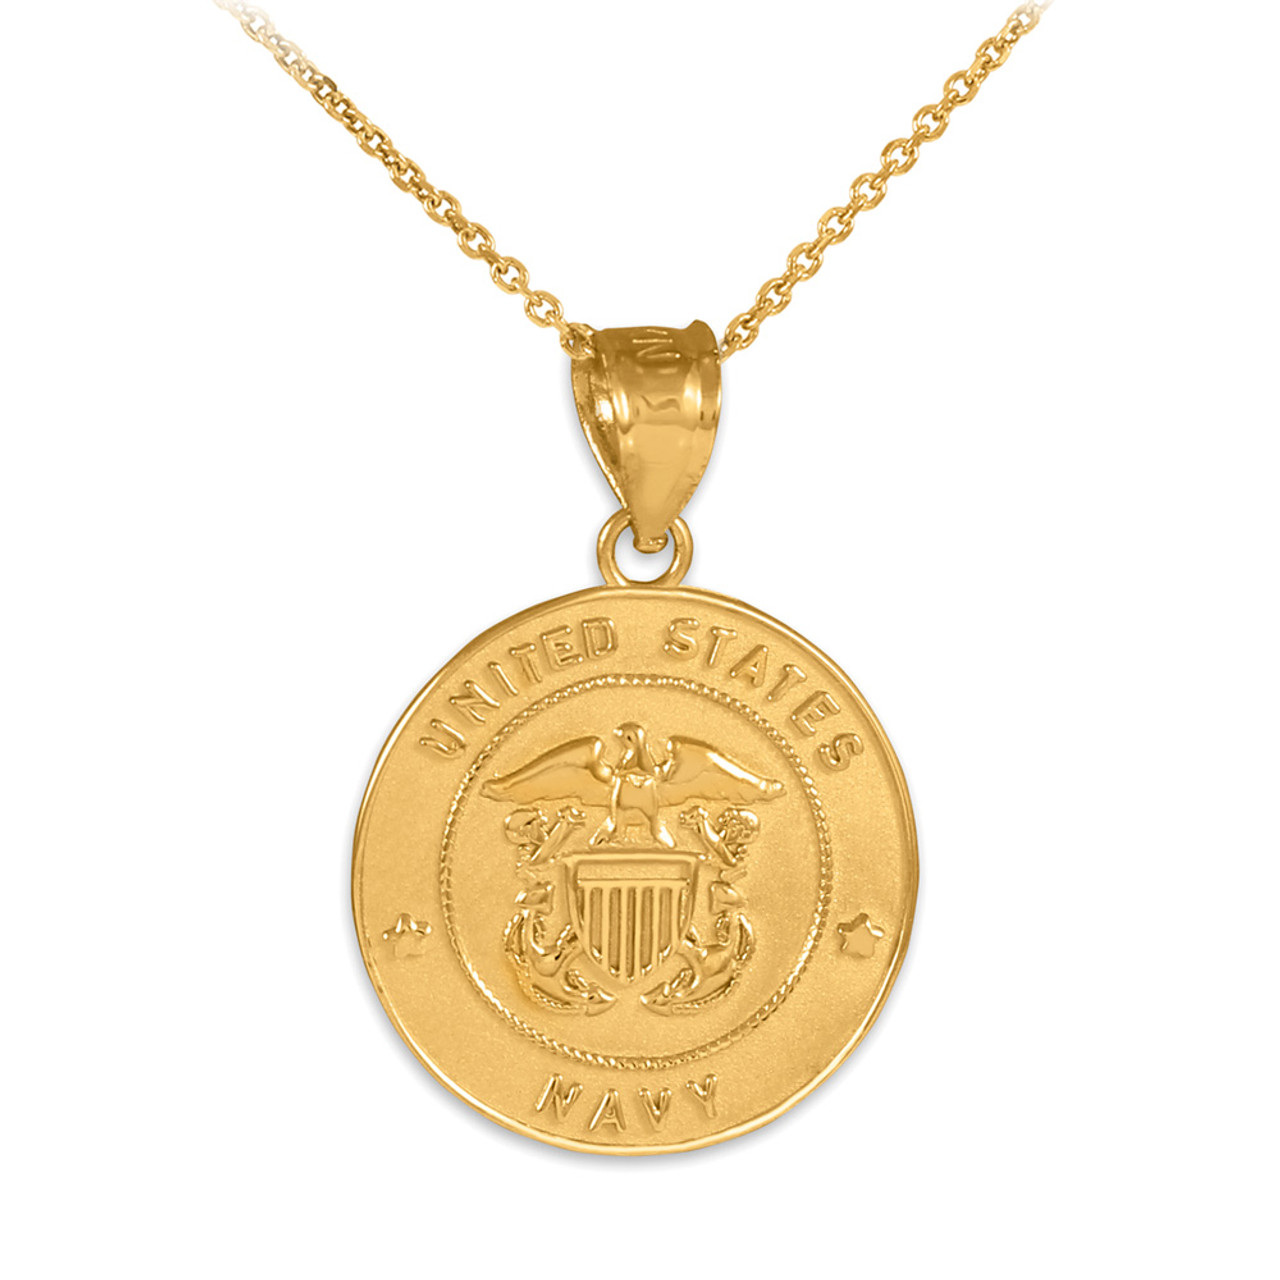 color turks coins chain necklaces arabic with jewelry for from plated arab anniyo item in gold women size necklace pendants accessories turkey coin wholesale pendant two